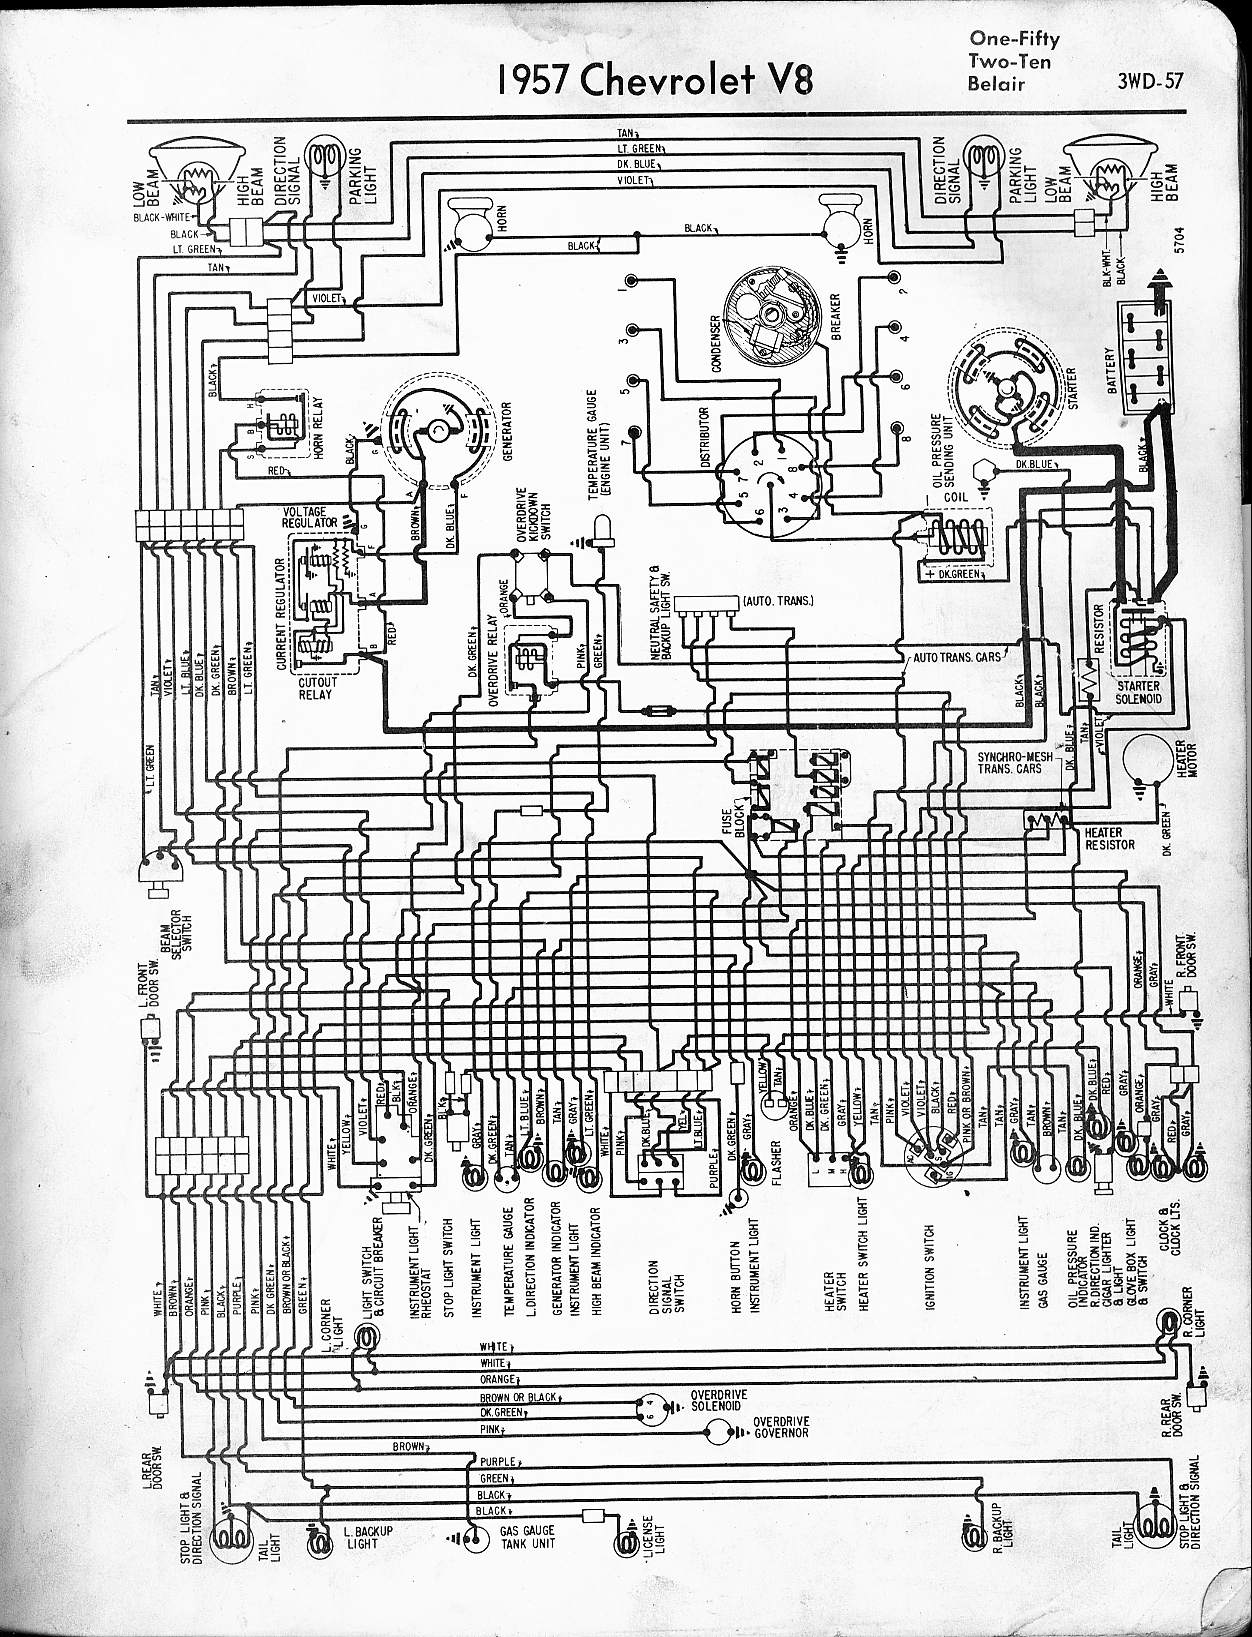 MWireChev57_3WD 057 57 65 chevy wiring diagrams 1957 ford wiring diagram at mr168.co